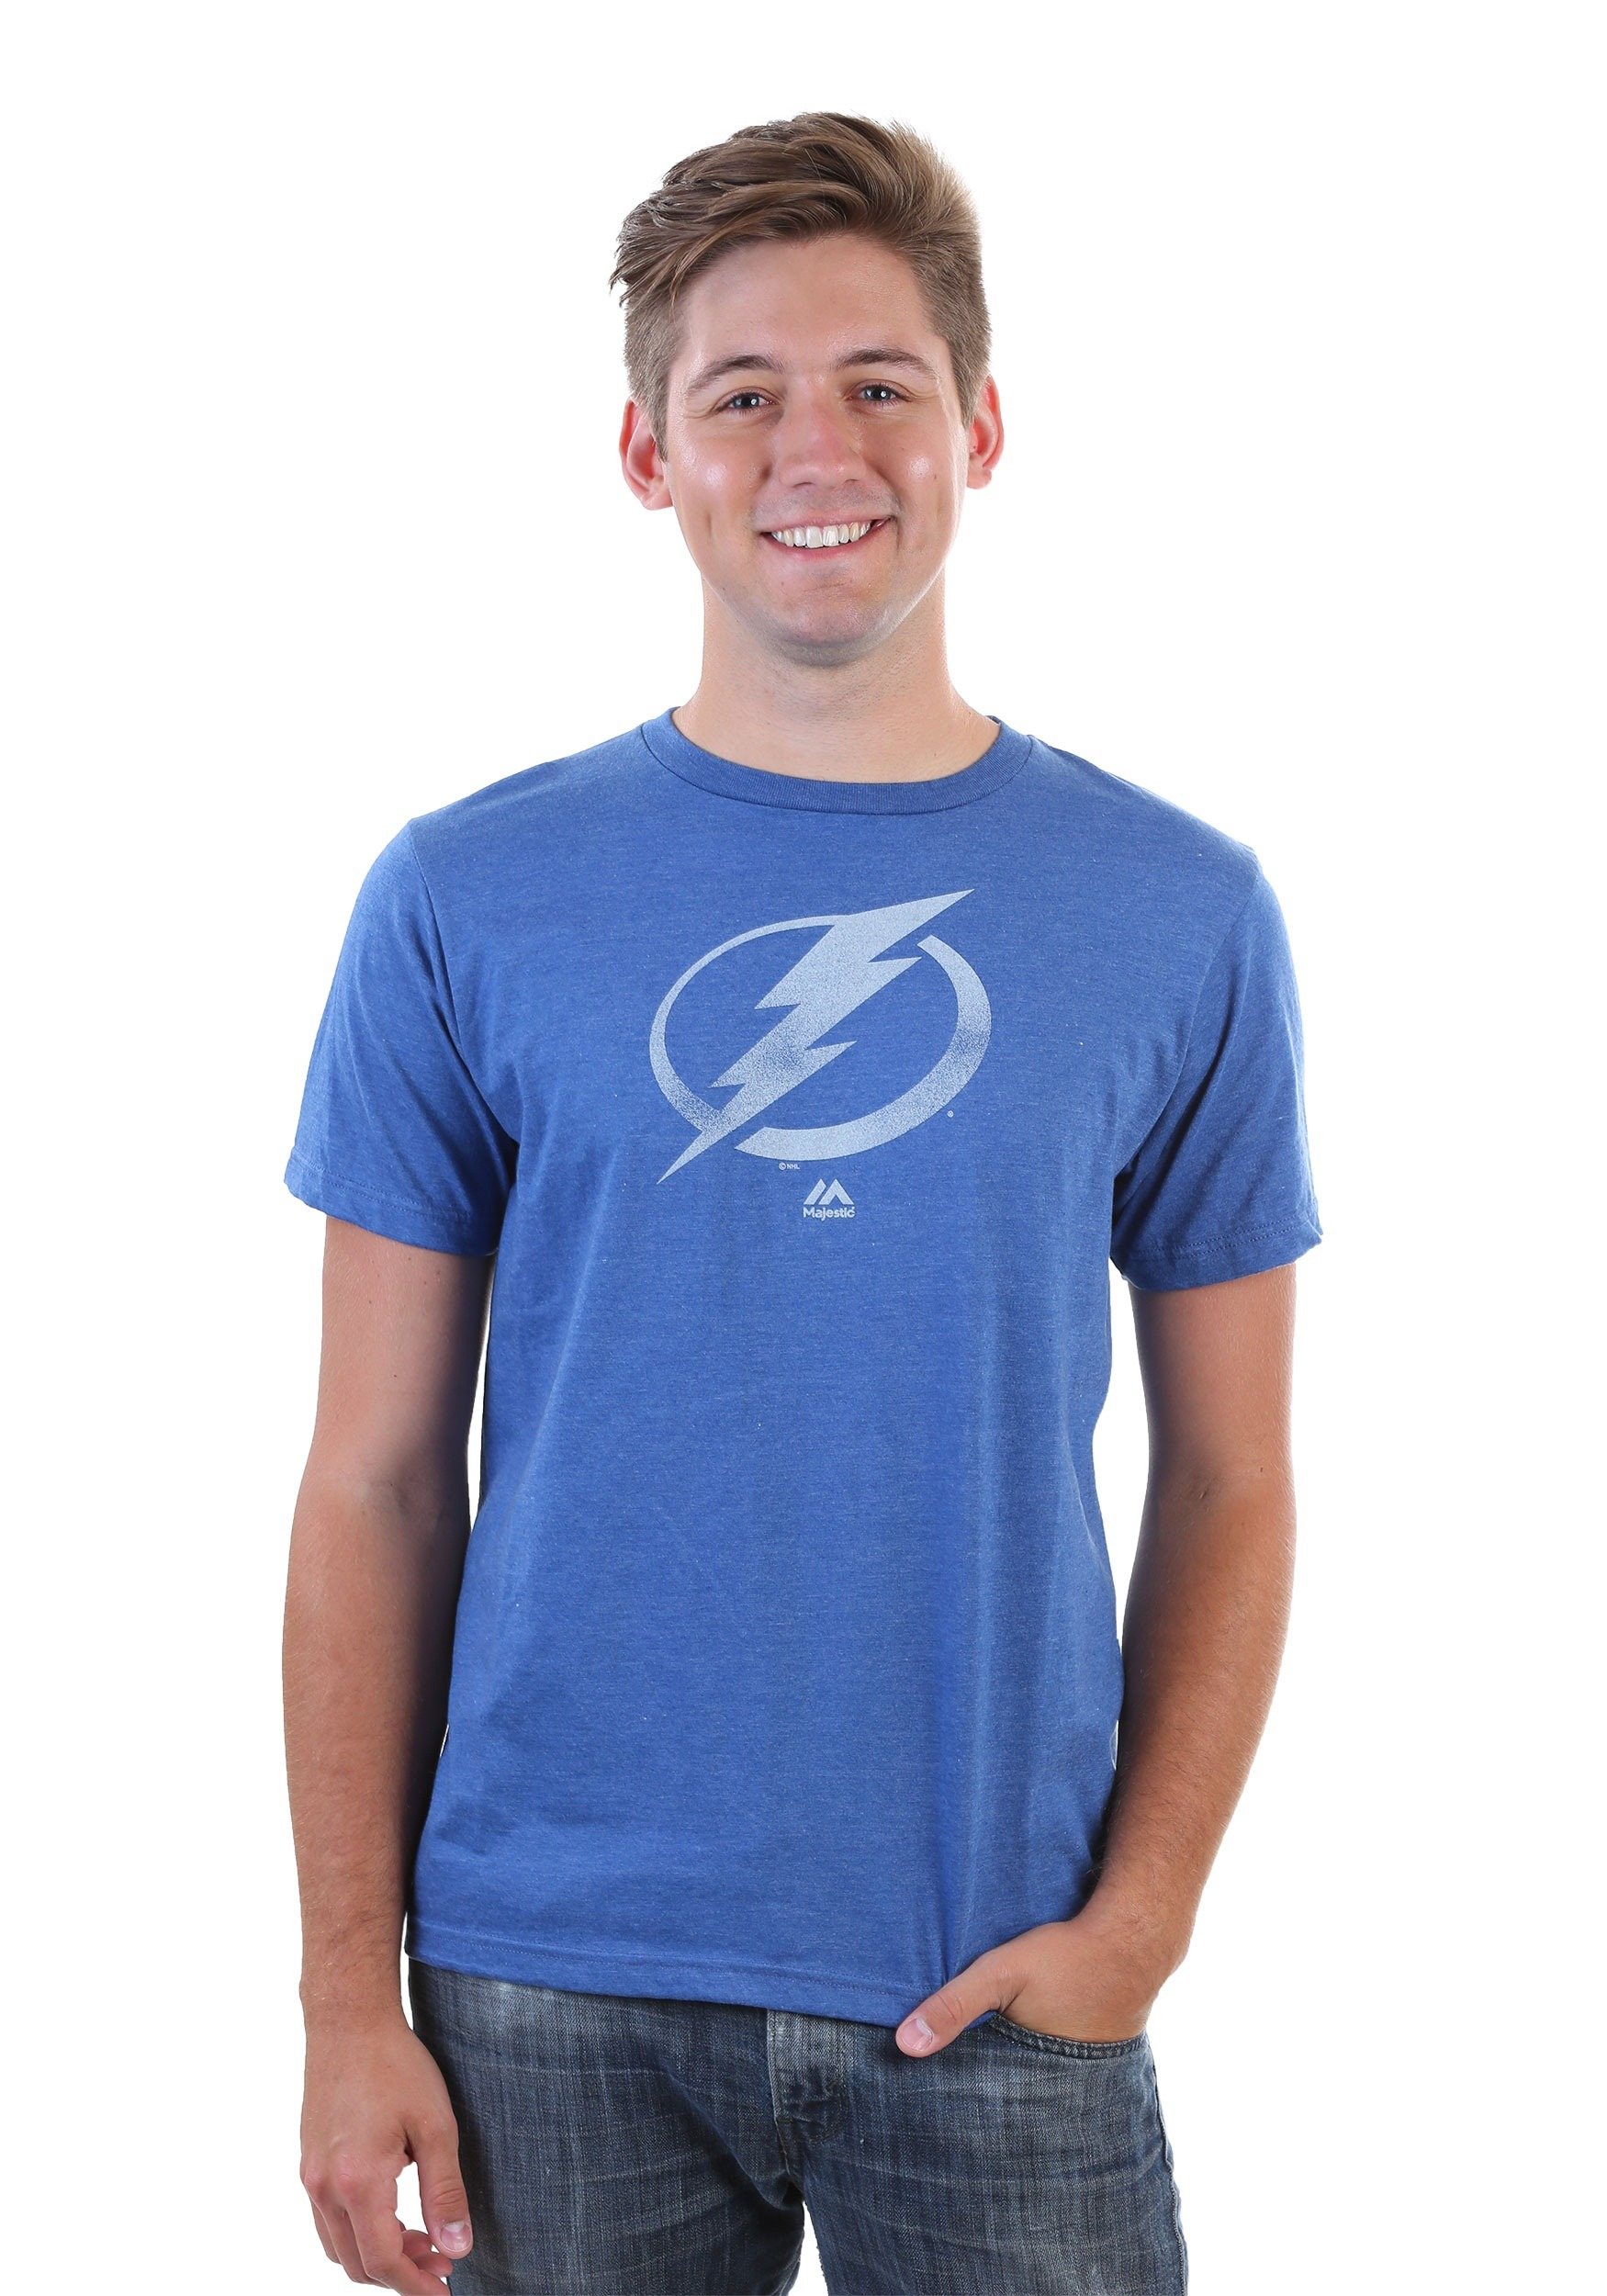 Tampa Bay Lightning Men's Raise the Level Shirt MJMTP2668A2GKJJ7